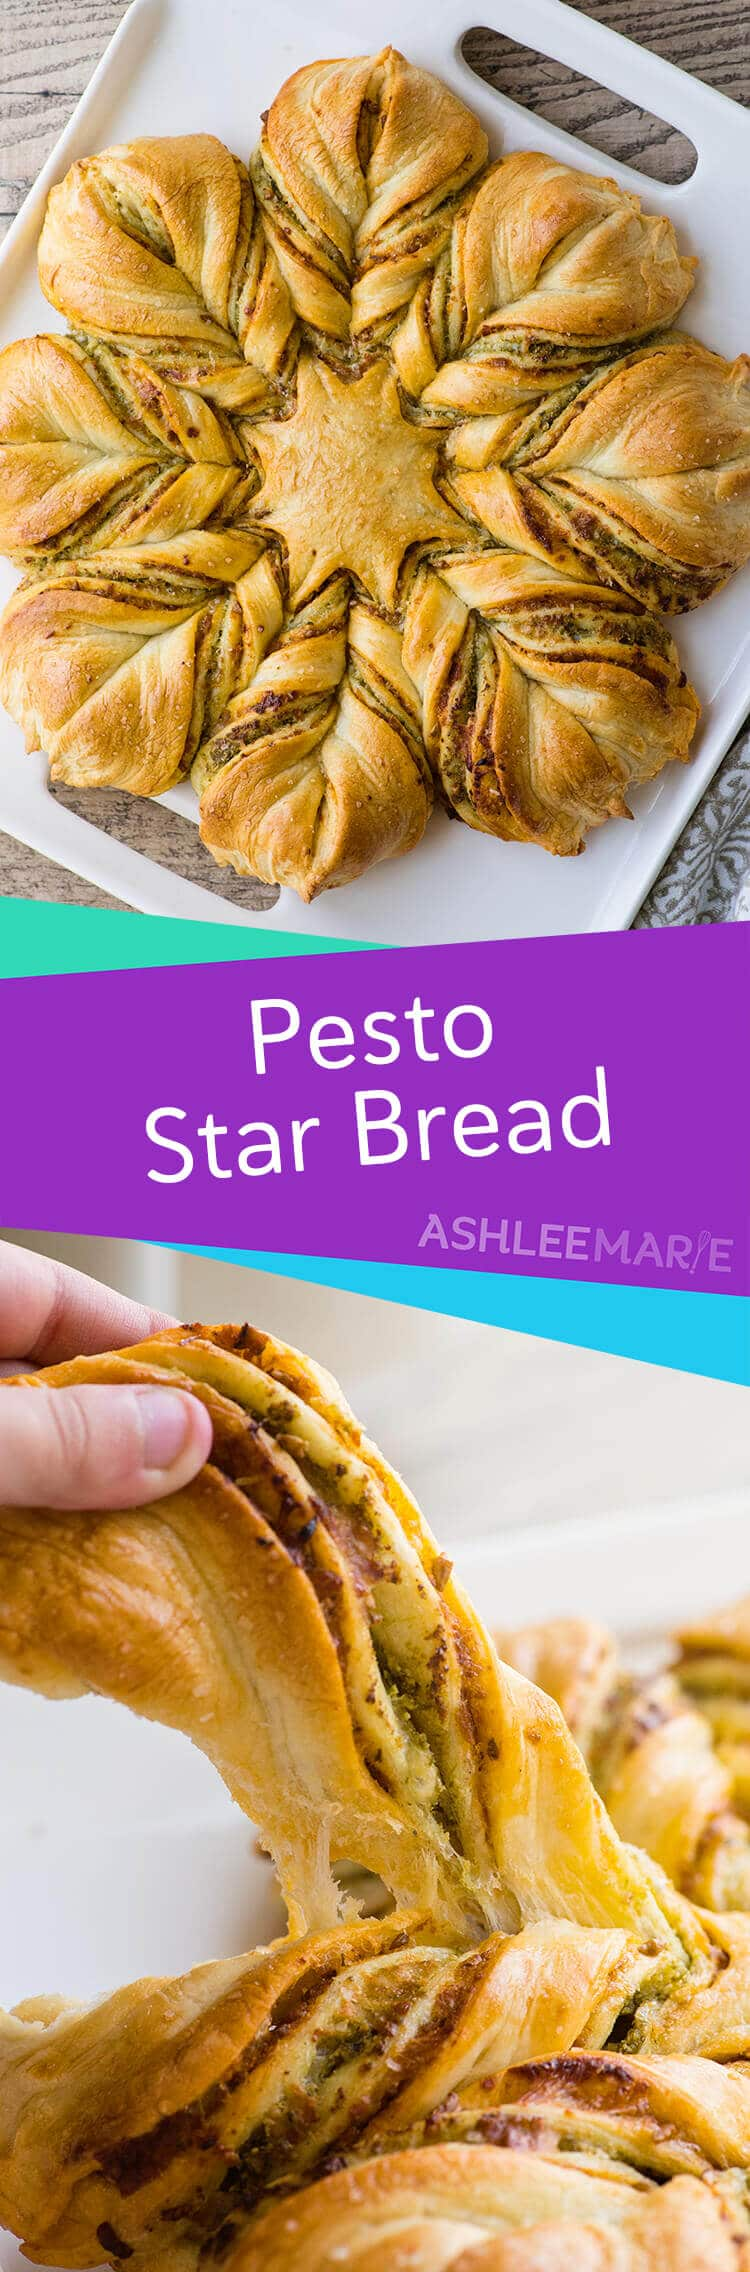 this pesto star braid is as delicious as it is lovely